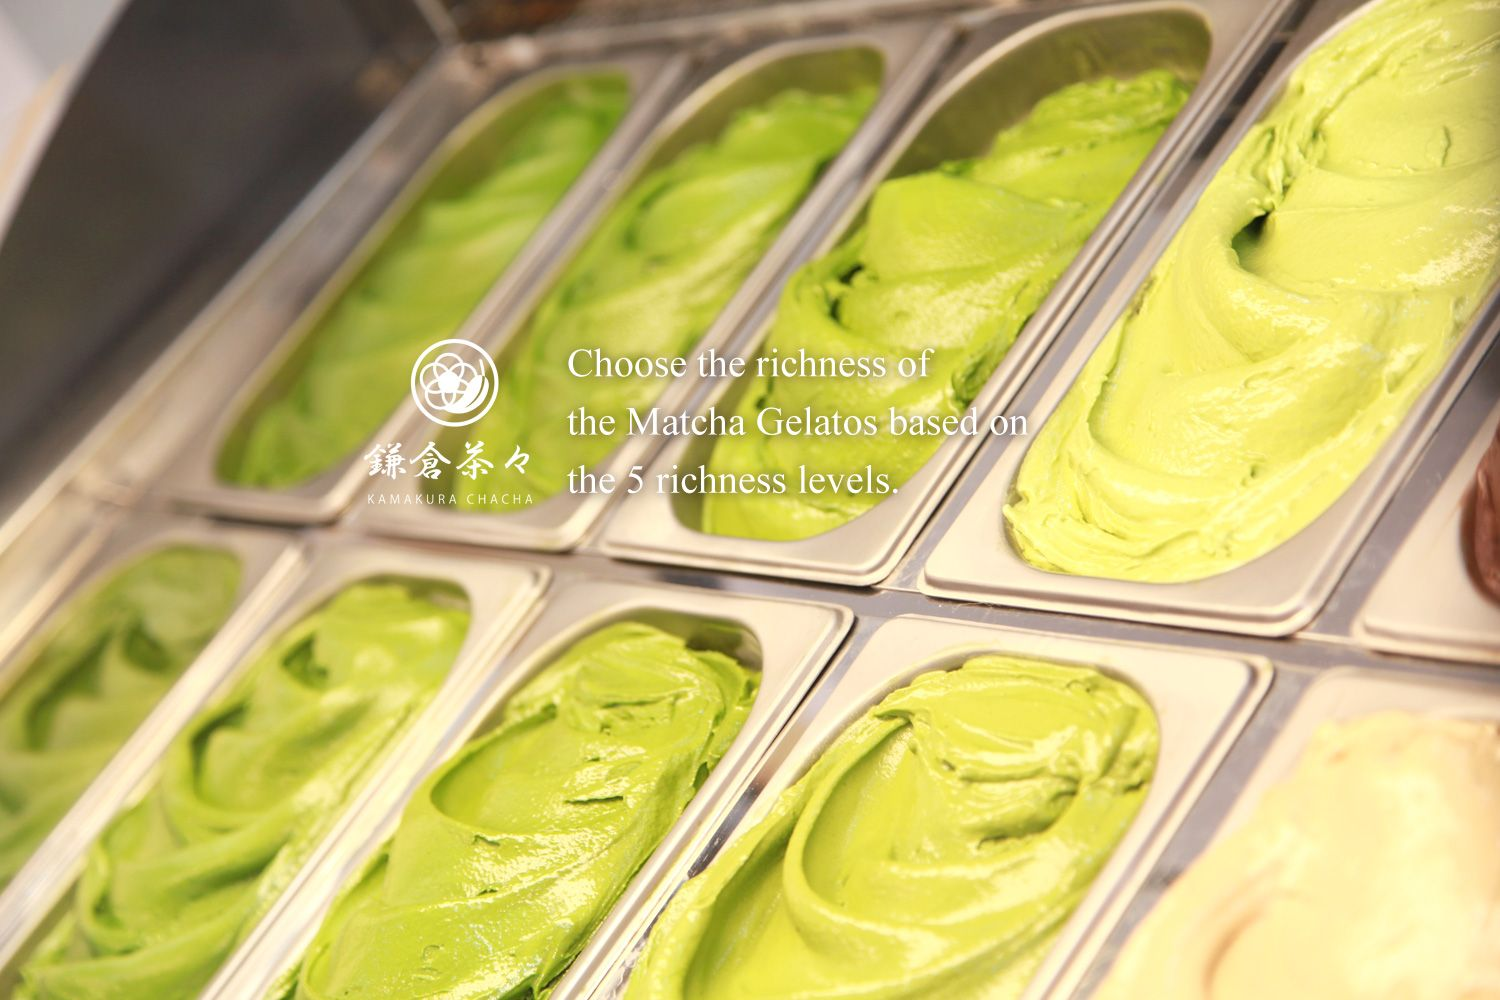 Choose the richness of the Matcha Gelatos based on the 5 richness levels.